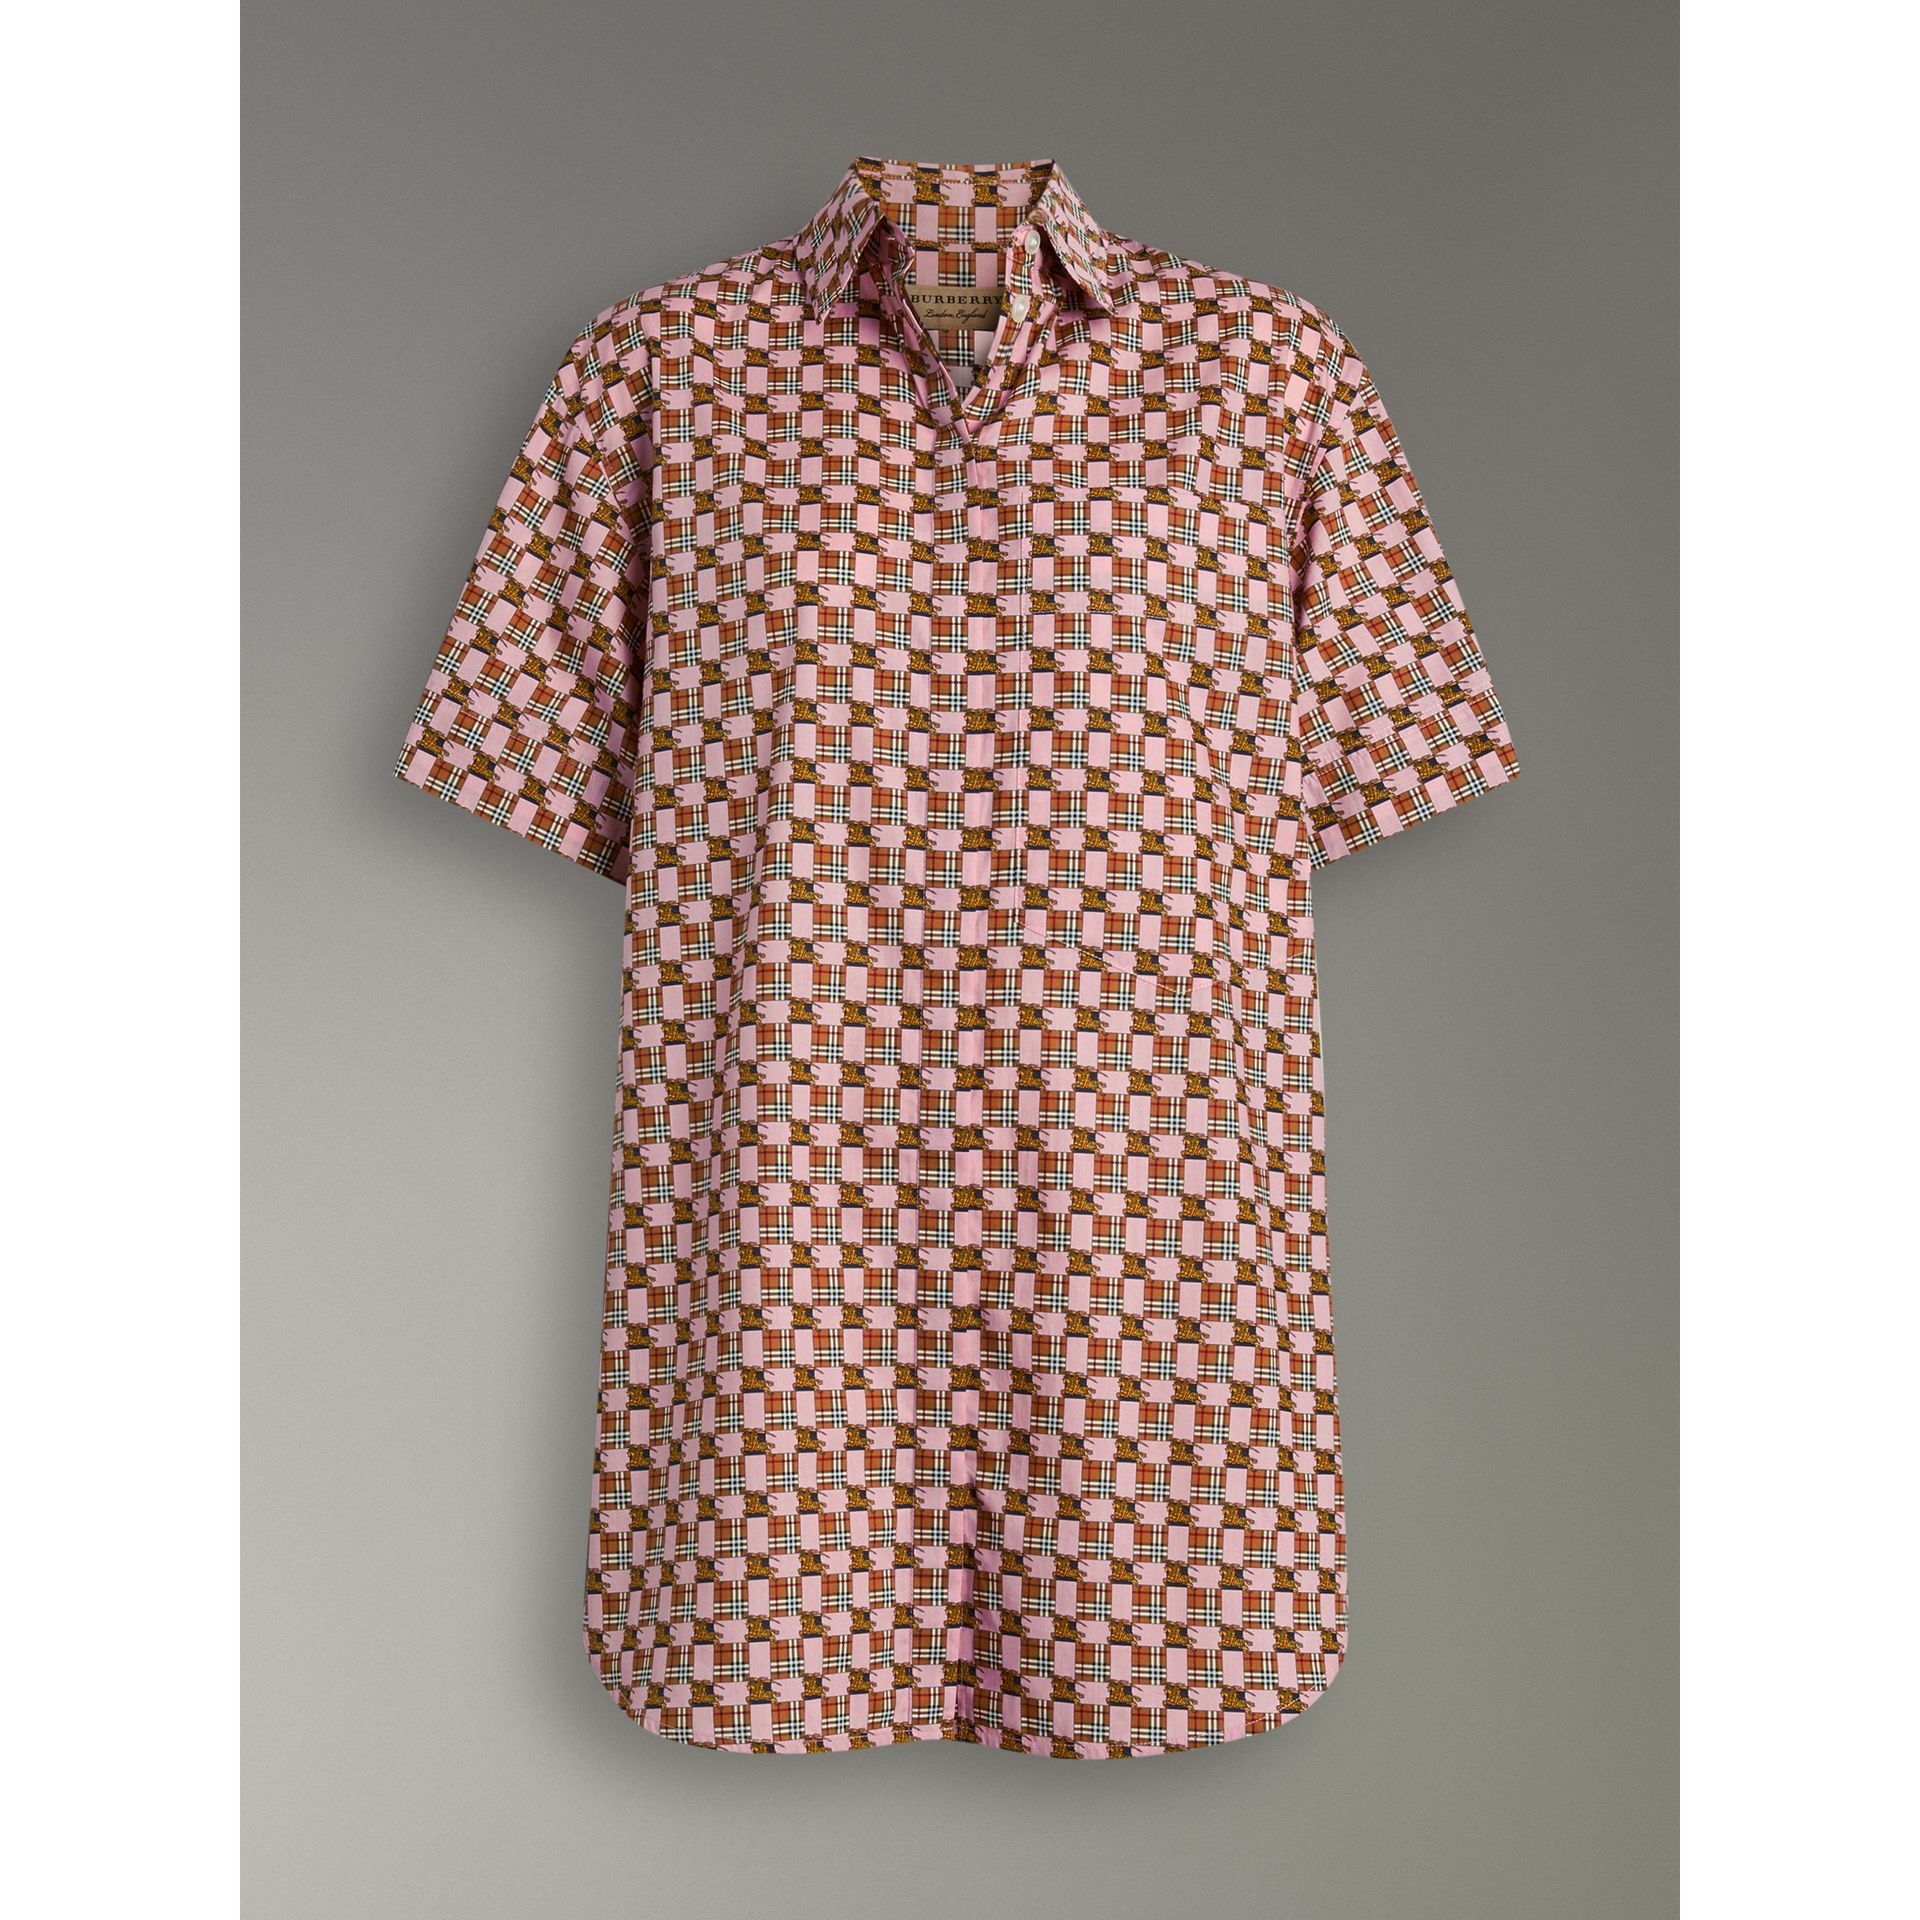 Short-sleeve Tiled Archive Print Cotton Shirt in Pink - Women | Burberry Australia - gallery image 3